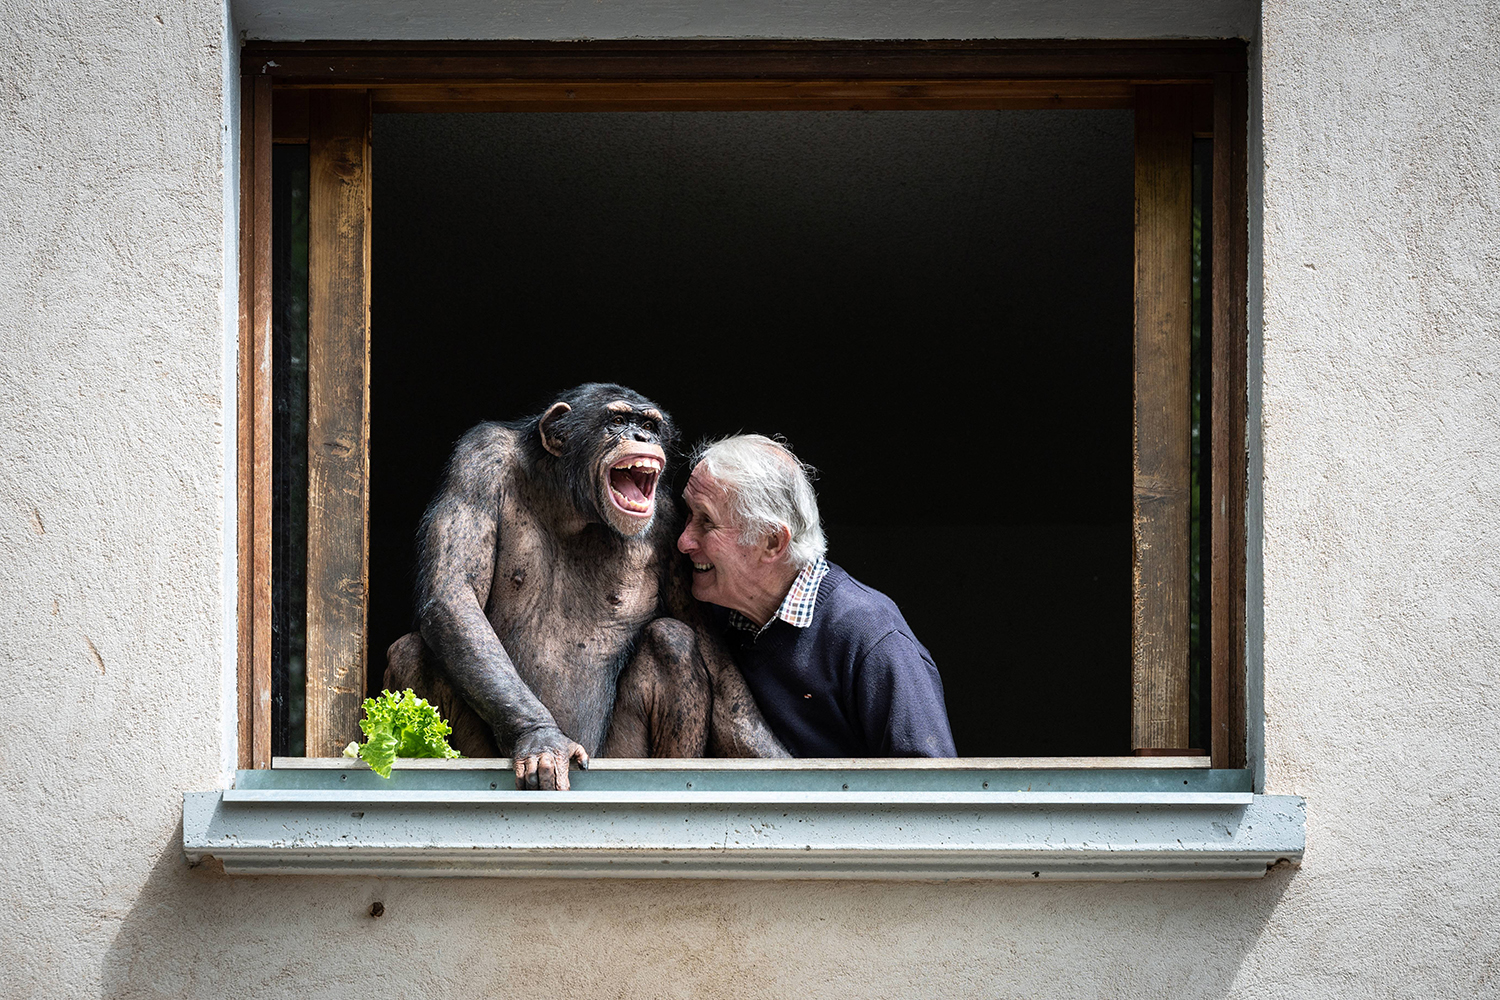 Zoo owner with chimp in France